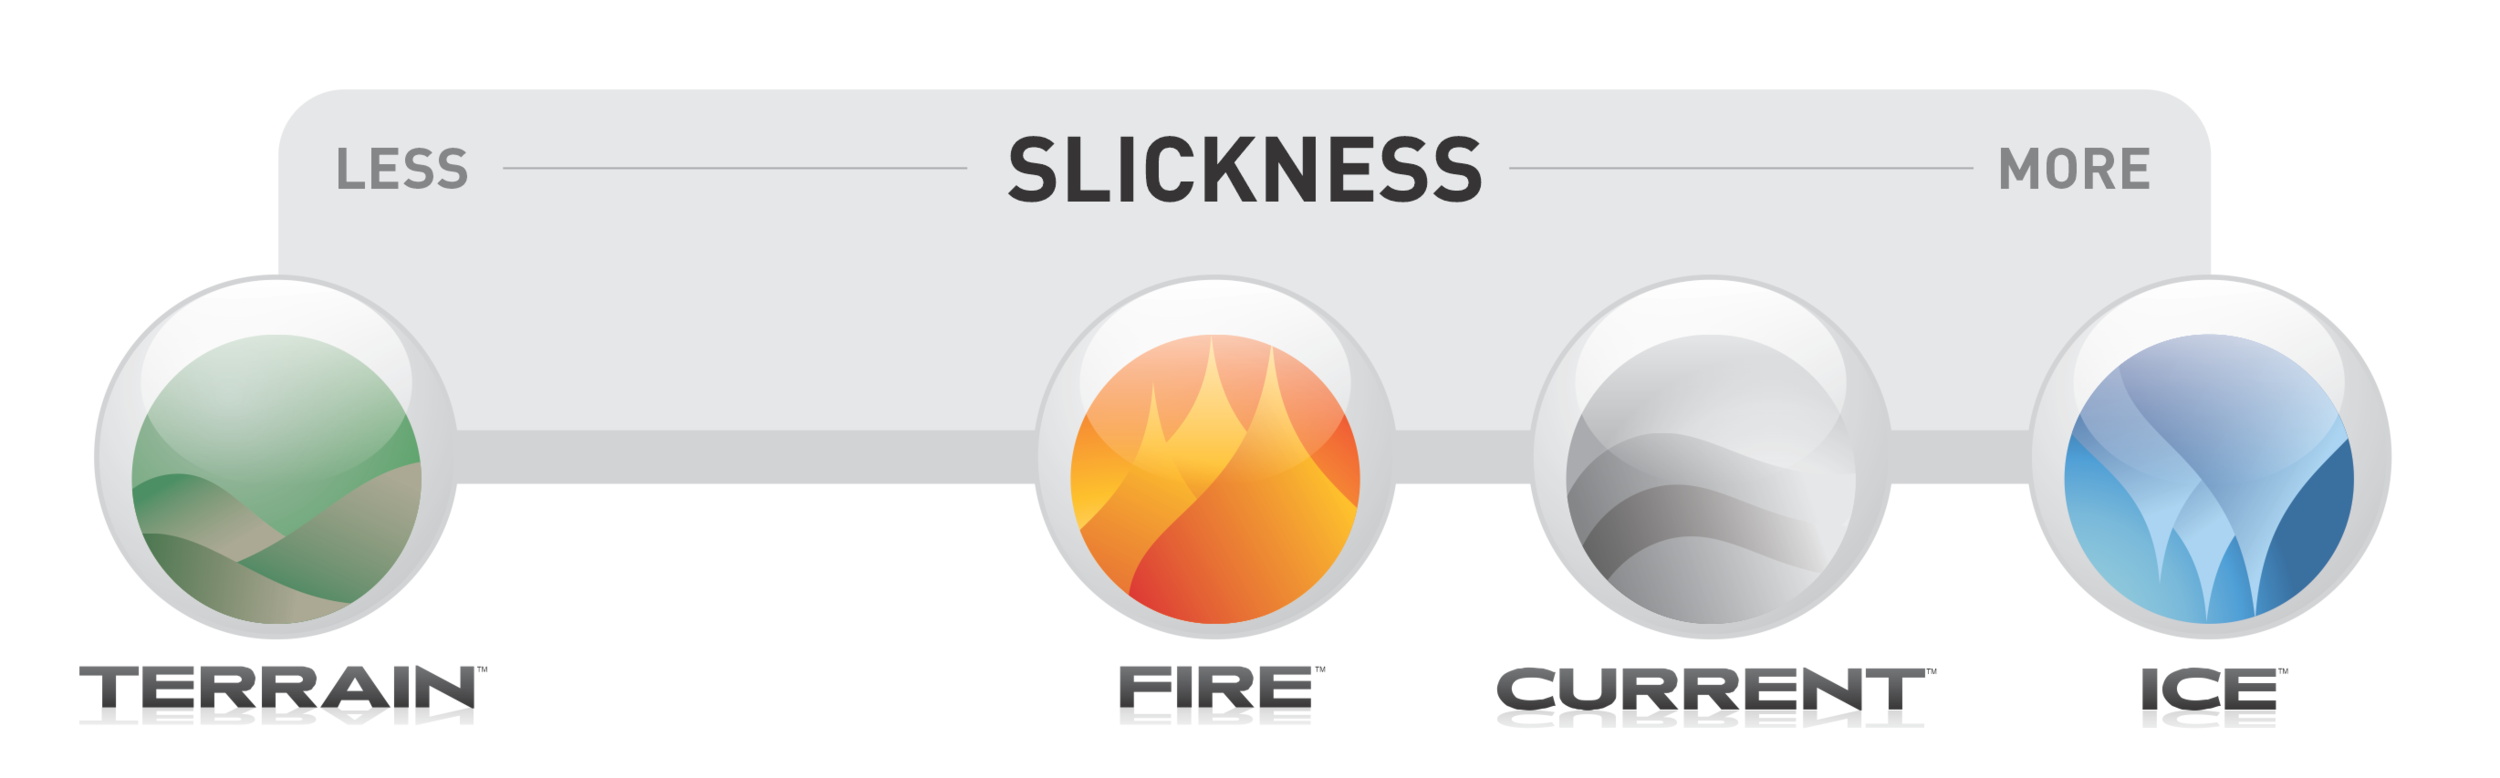 elements-slickness.png